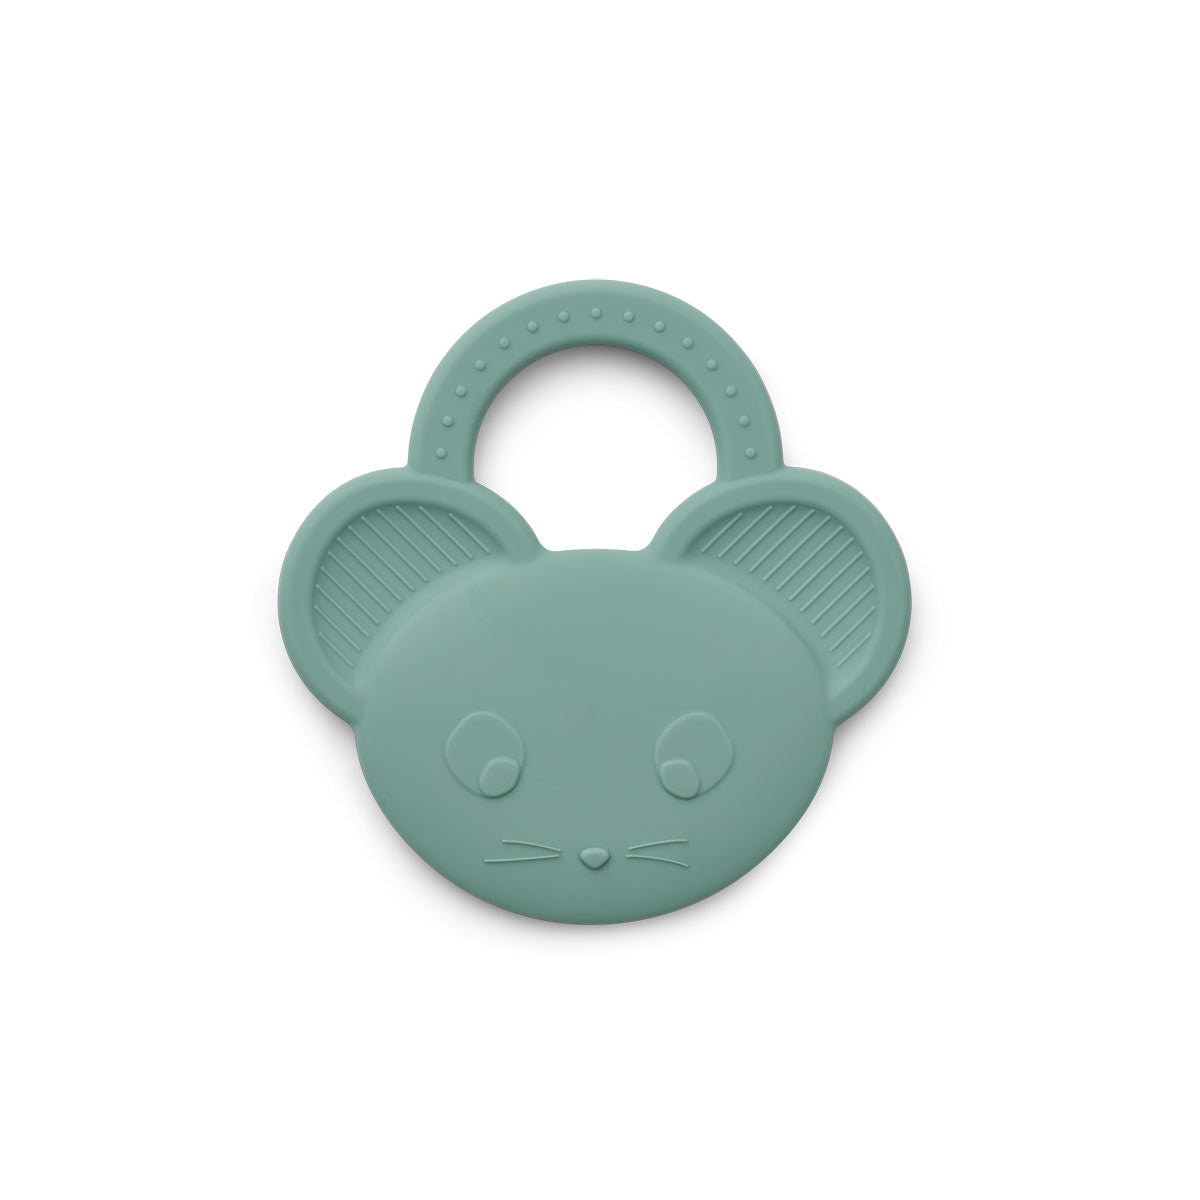 Liewood Gemma Silicone Teether Teether 9542 Mouse peppermint